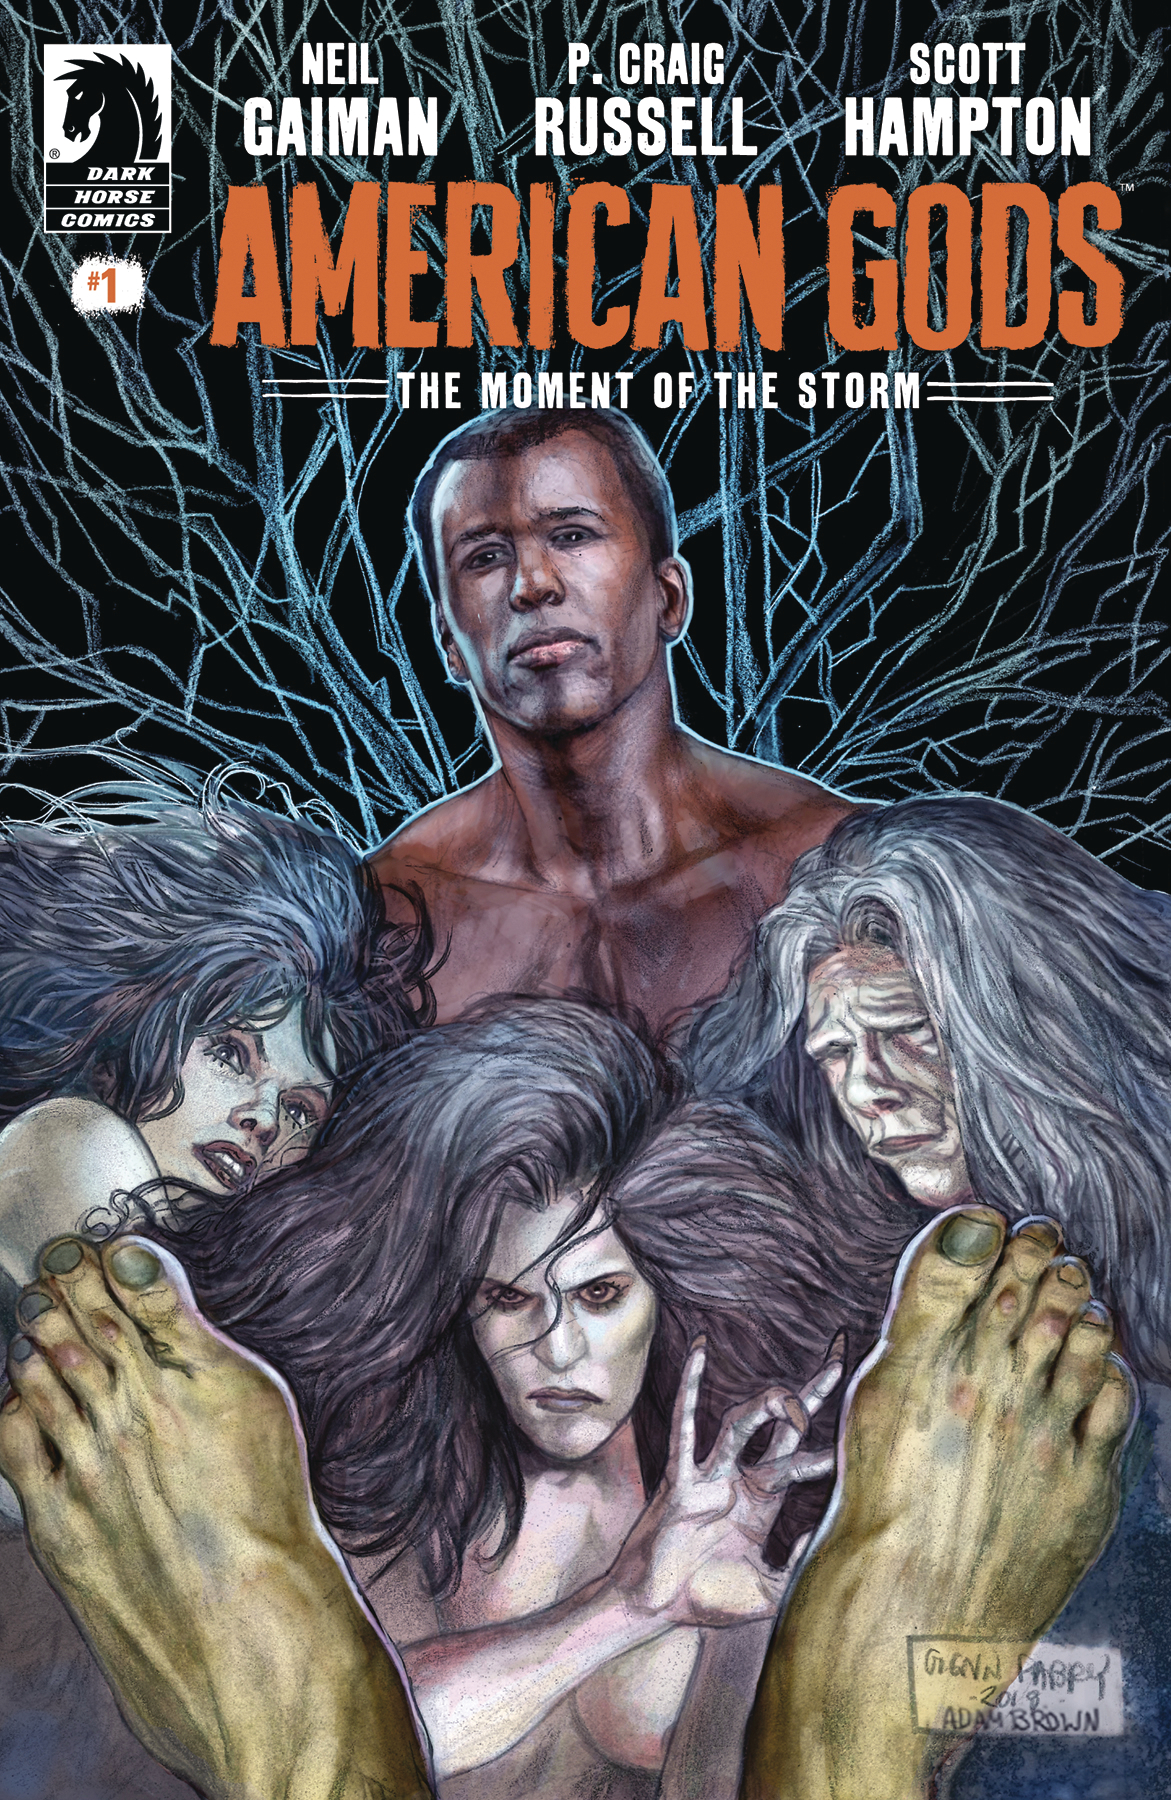 PREVIEWSworld's New Releases For 4/17/2019 - Previews World